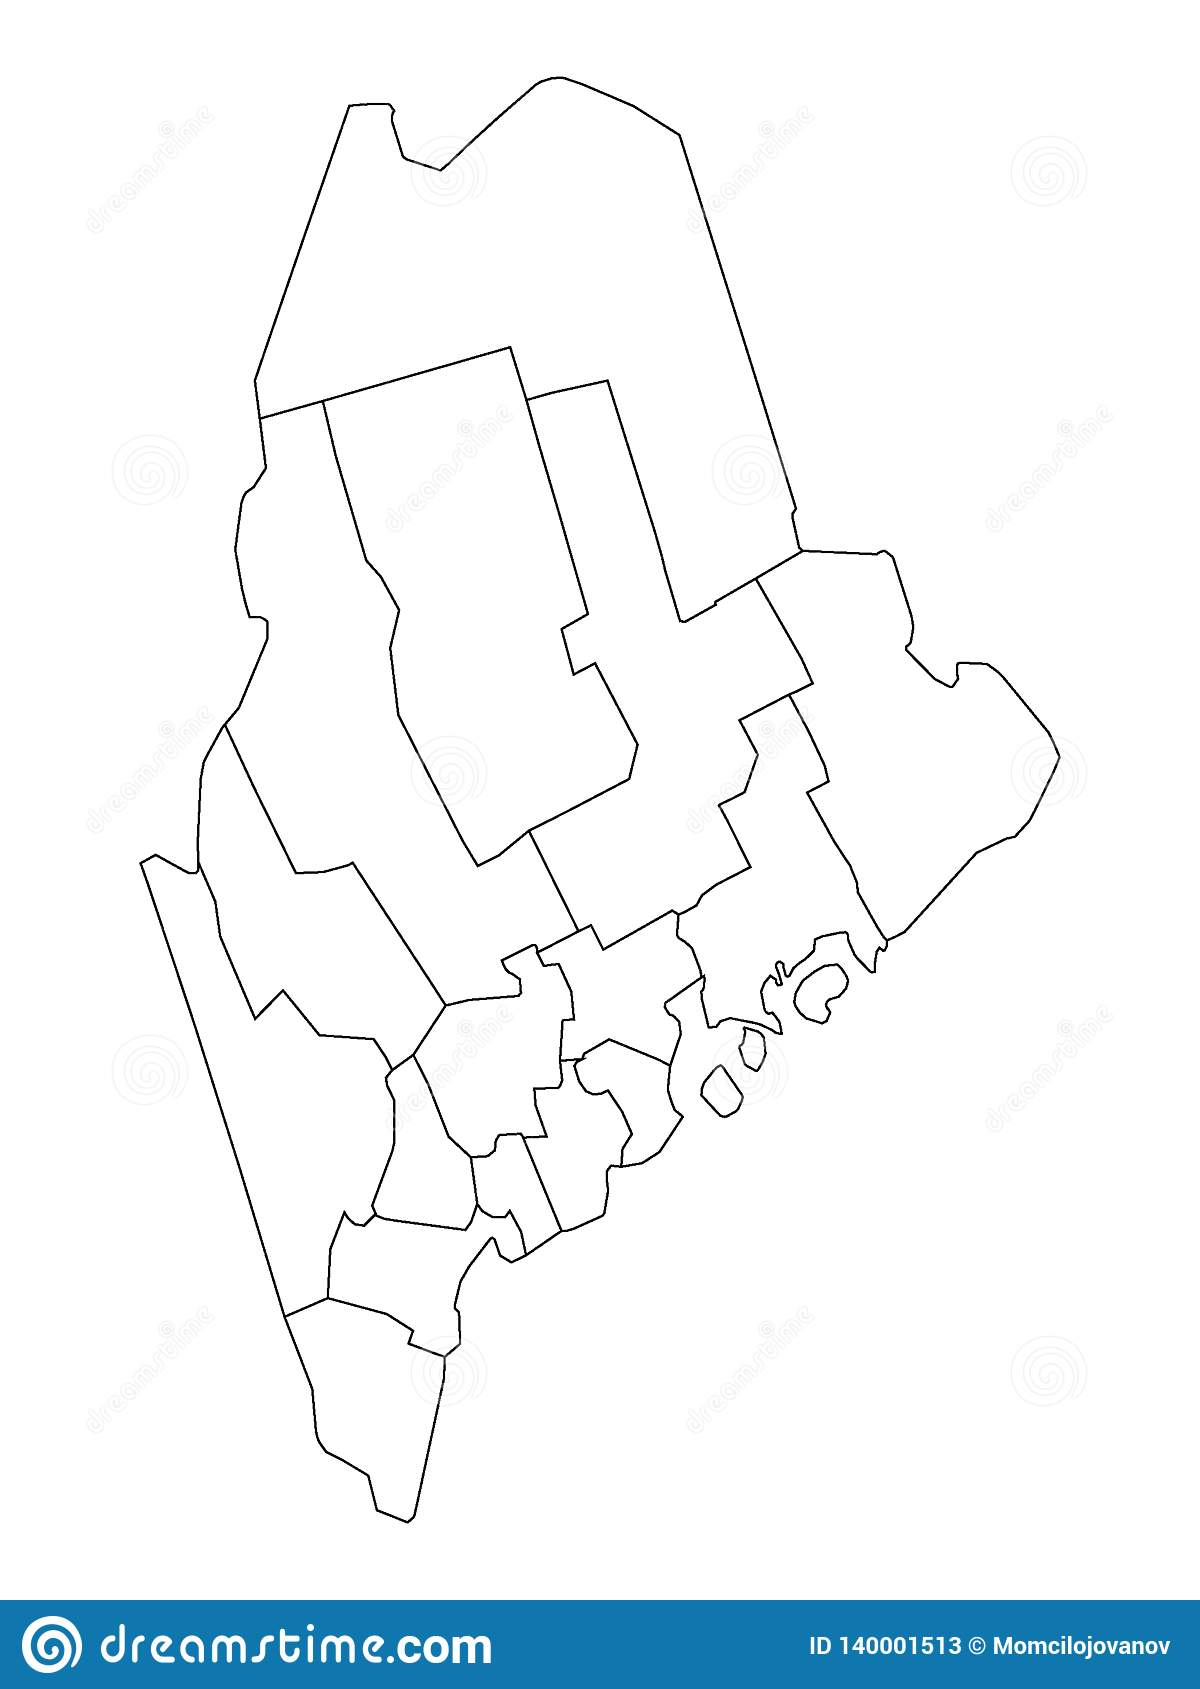 Counties Map Of US State Of Maine Stock Vector ... on maine colleges map, maine regions map, state of maine map, maine towns map, maine state road map printable, maine mountains map, old maine map, maine lakes map, maine legislature map, maine political map, maine land ownership map, maine weather map, maine zip codes map, maine services map, maine real estate map, maine county, maine watersheds map, maine hospitals map, maine city map,